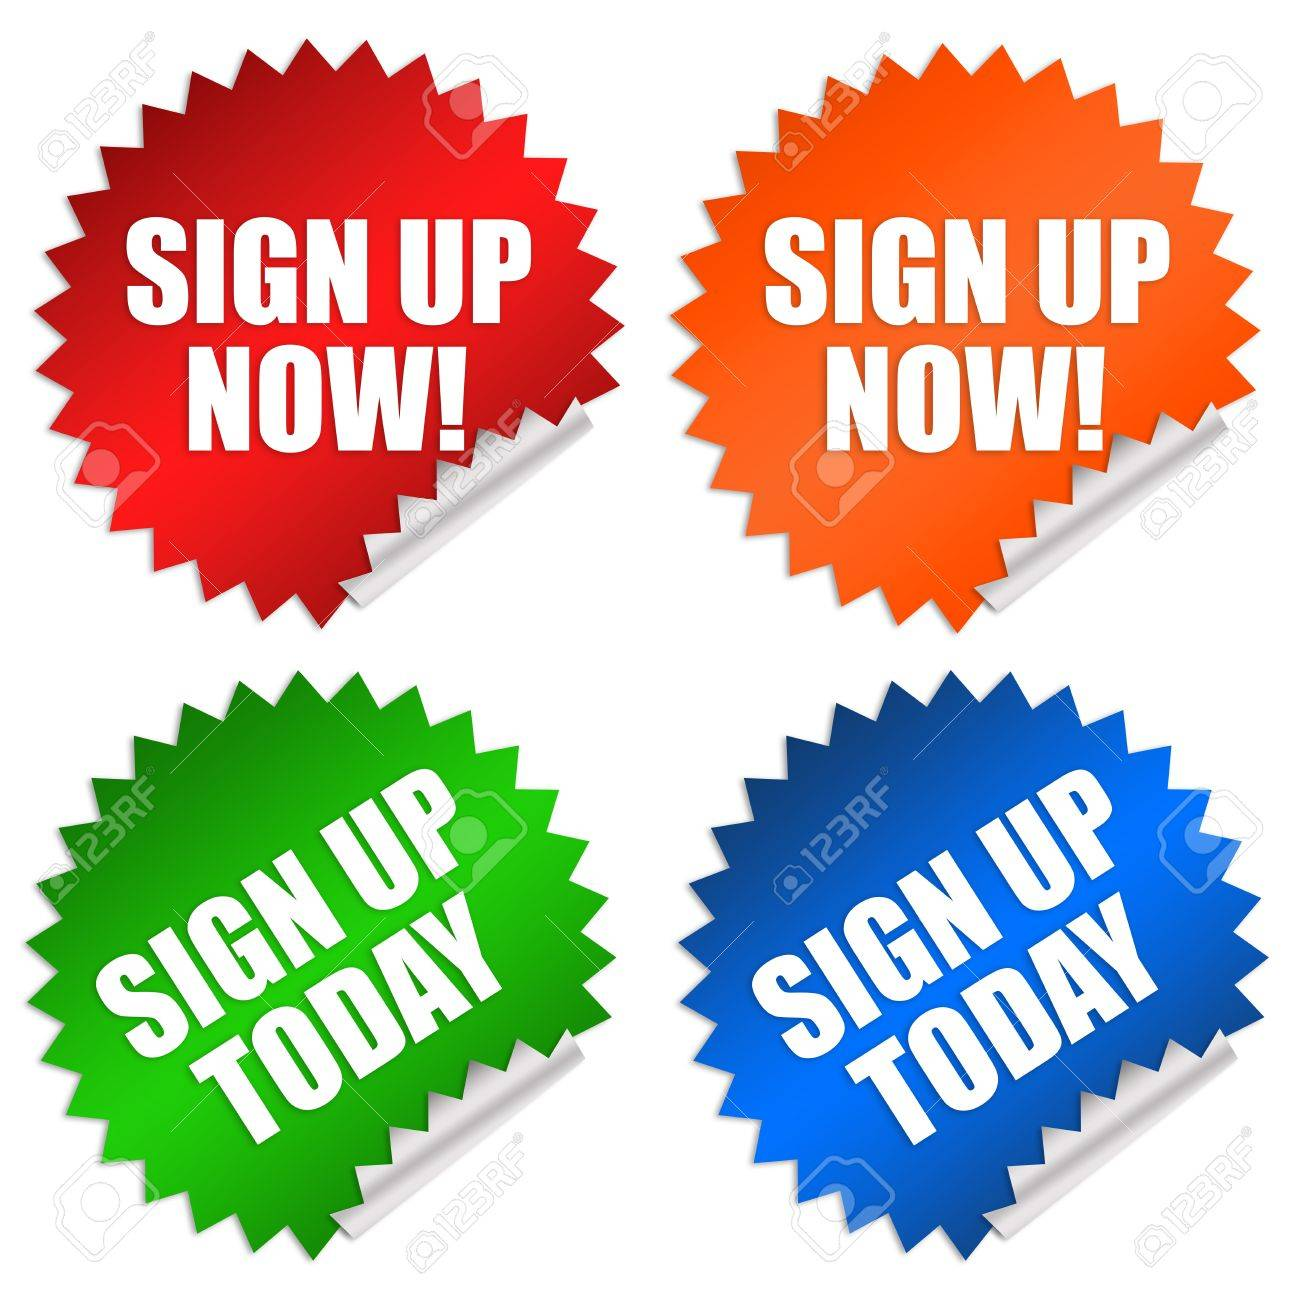 Sign up now sticker Stock Photo - 9156419